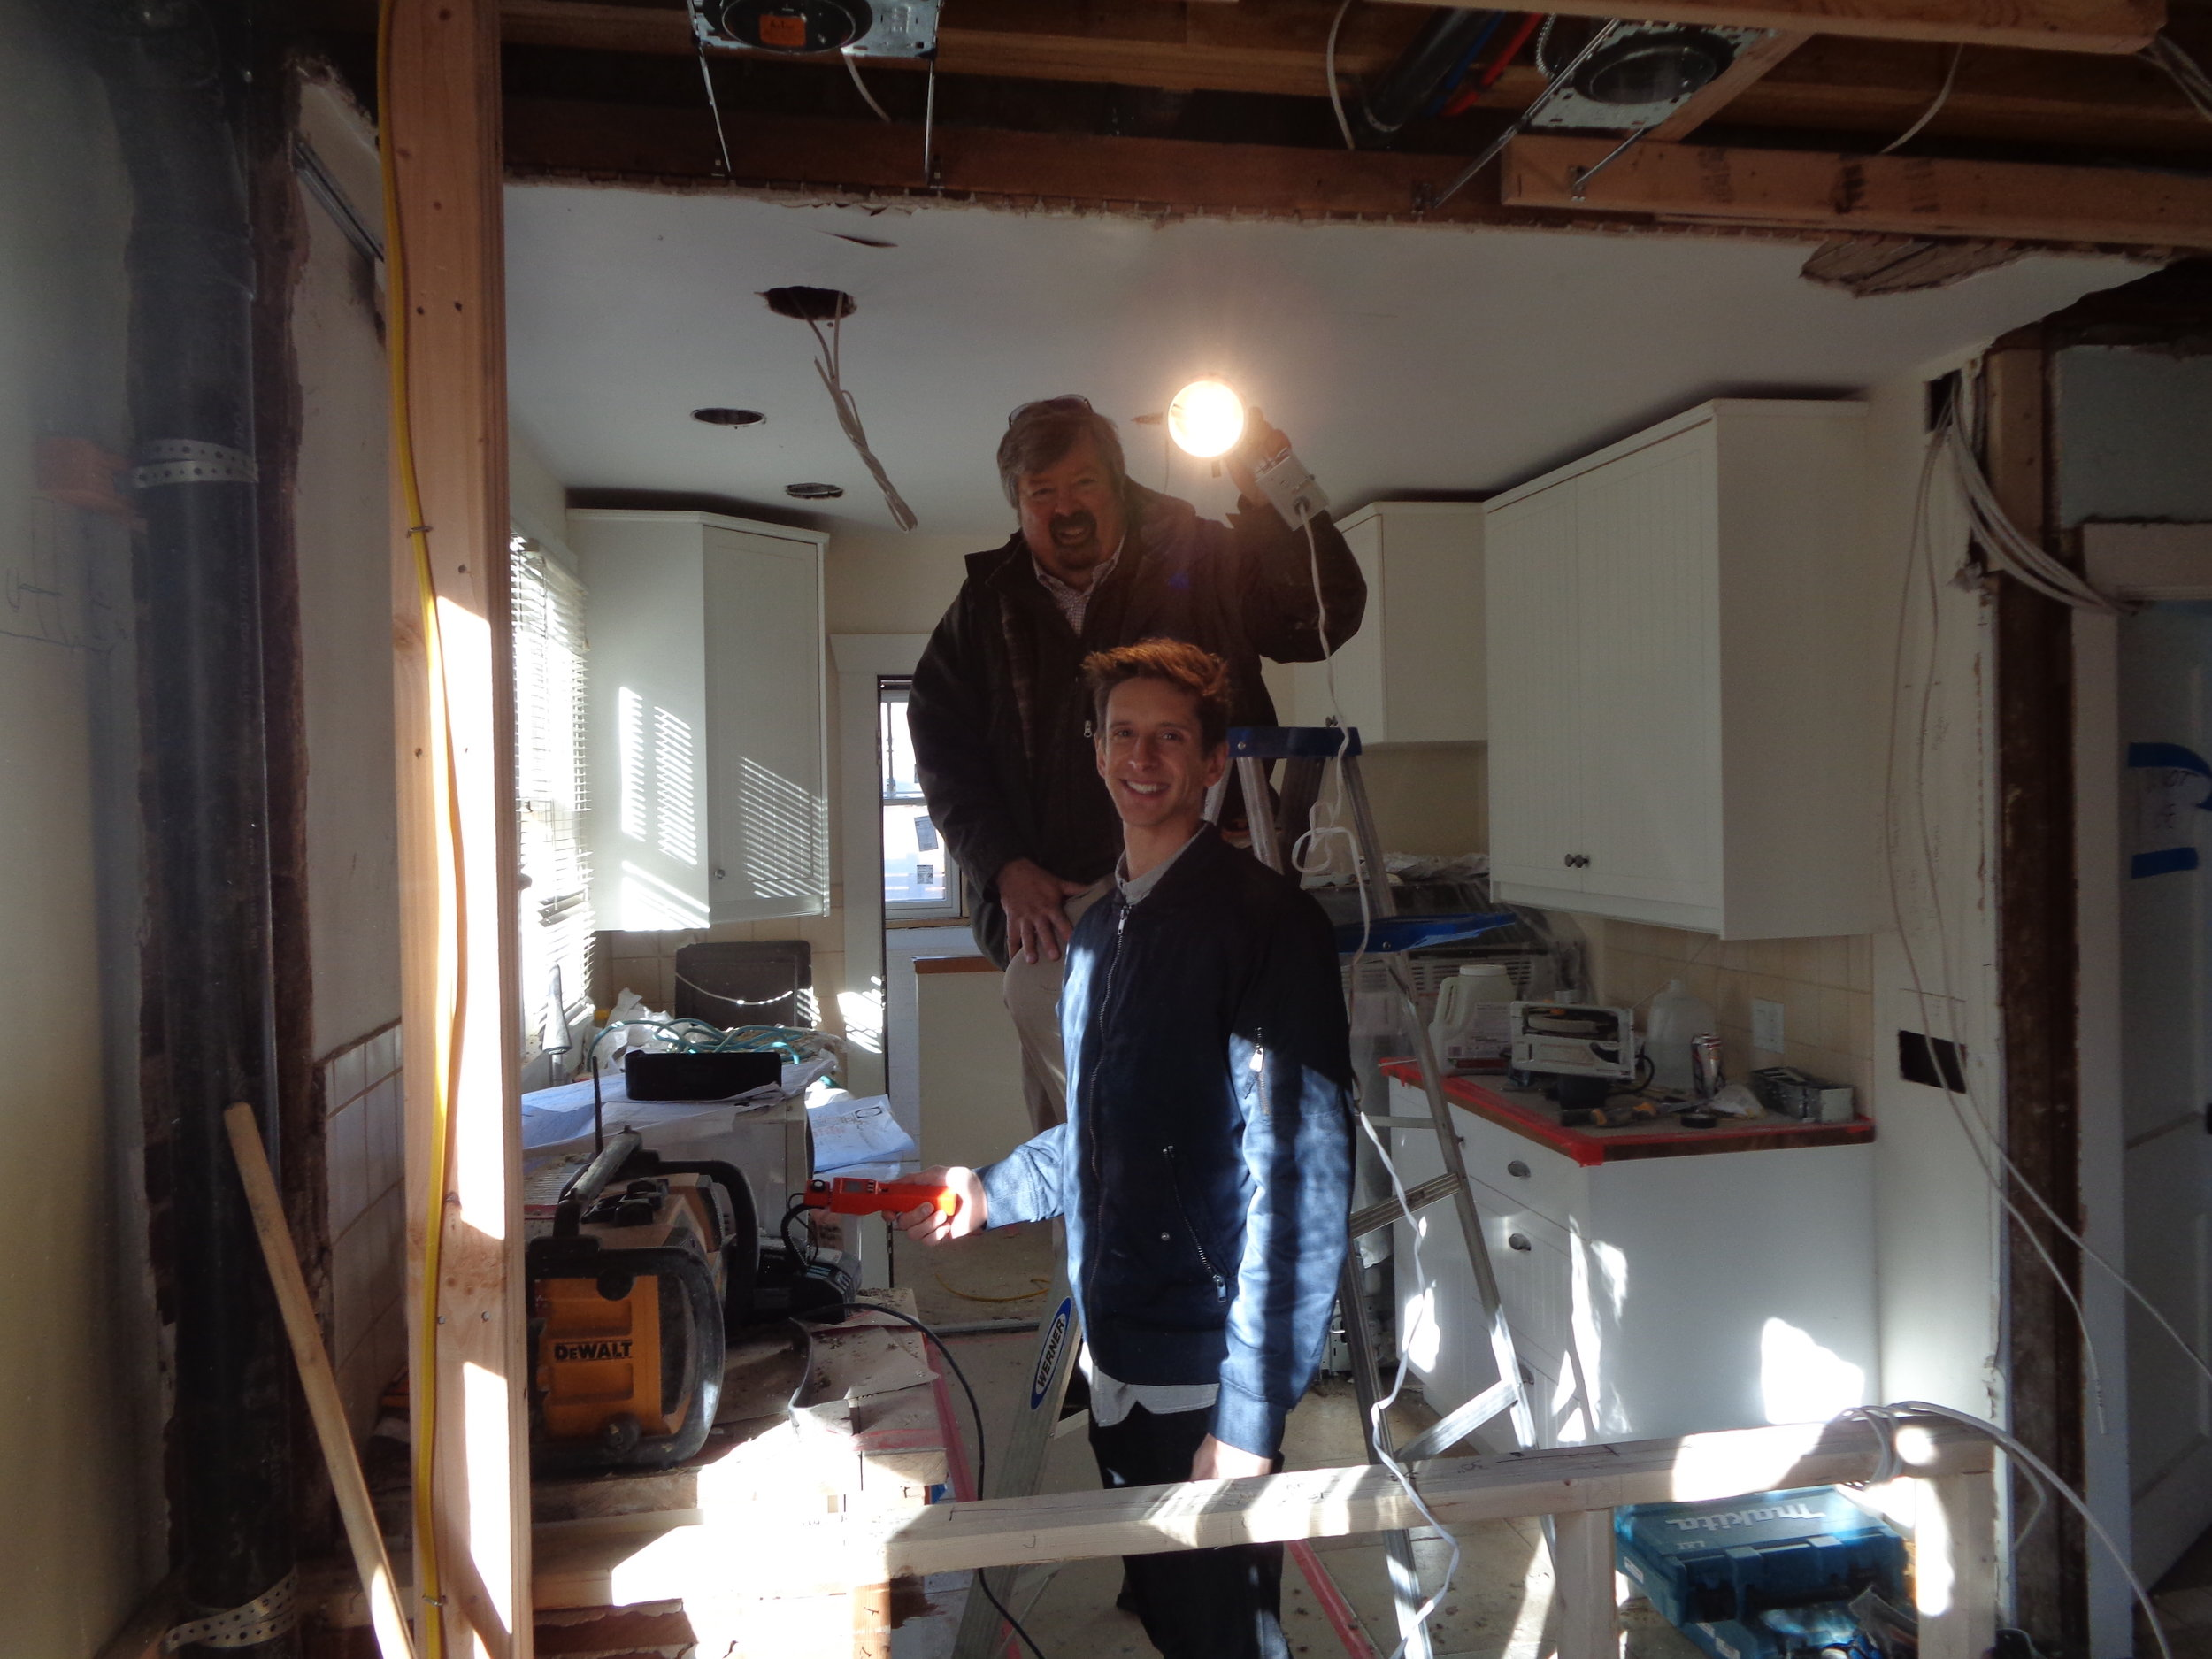 Client Mike Flaherty and I show how we measured four different lamp types at five different locations overhead in his remodeled Congress Park kitchen the night before (you need dark!)